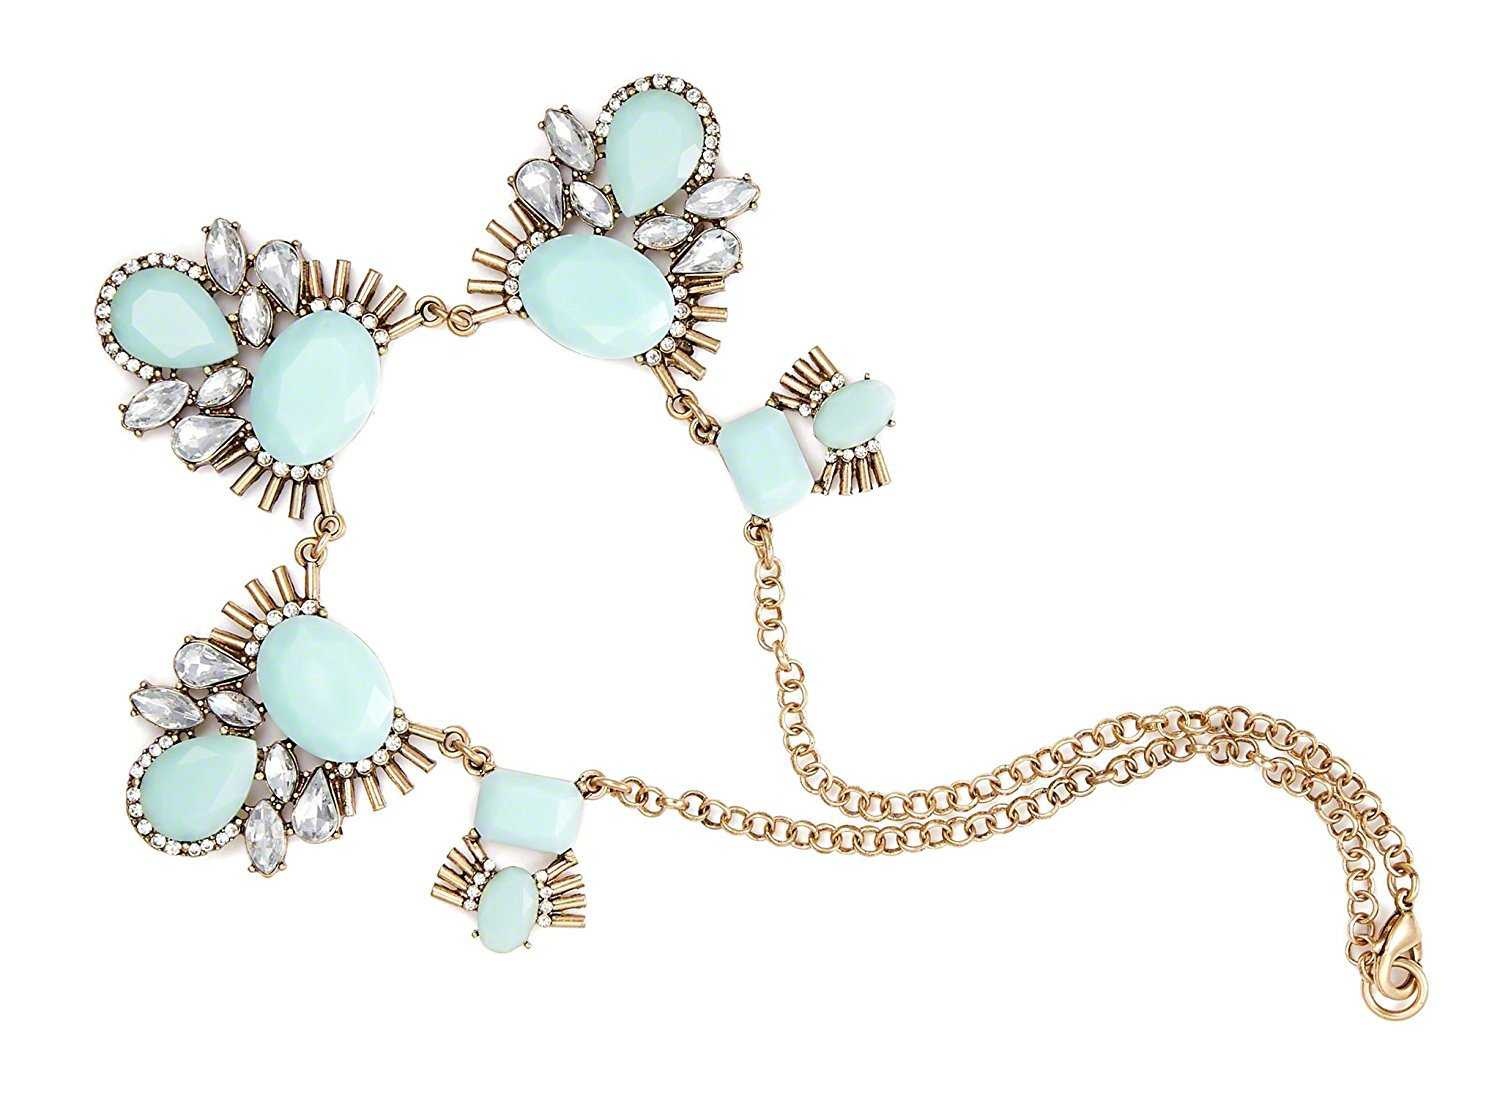 LA JOLIE MUSE Fashion Necklace for Party, Gift for Her Bee Rhinestone Crystal Gift for Women